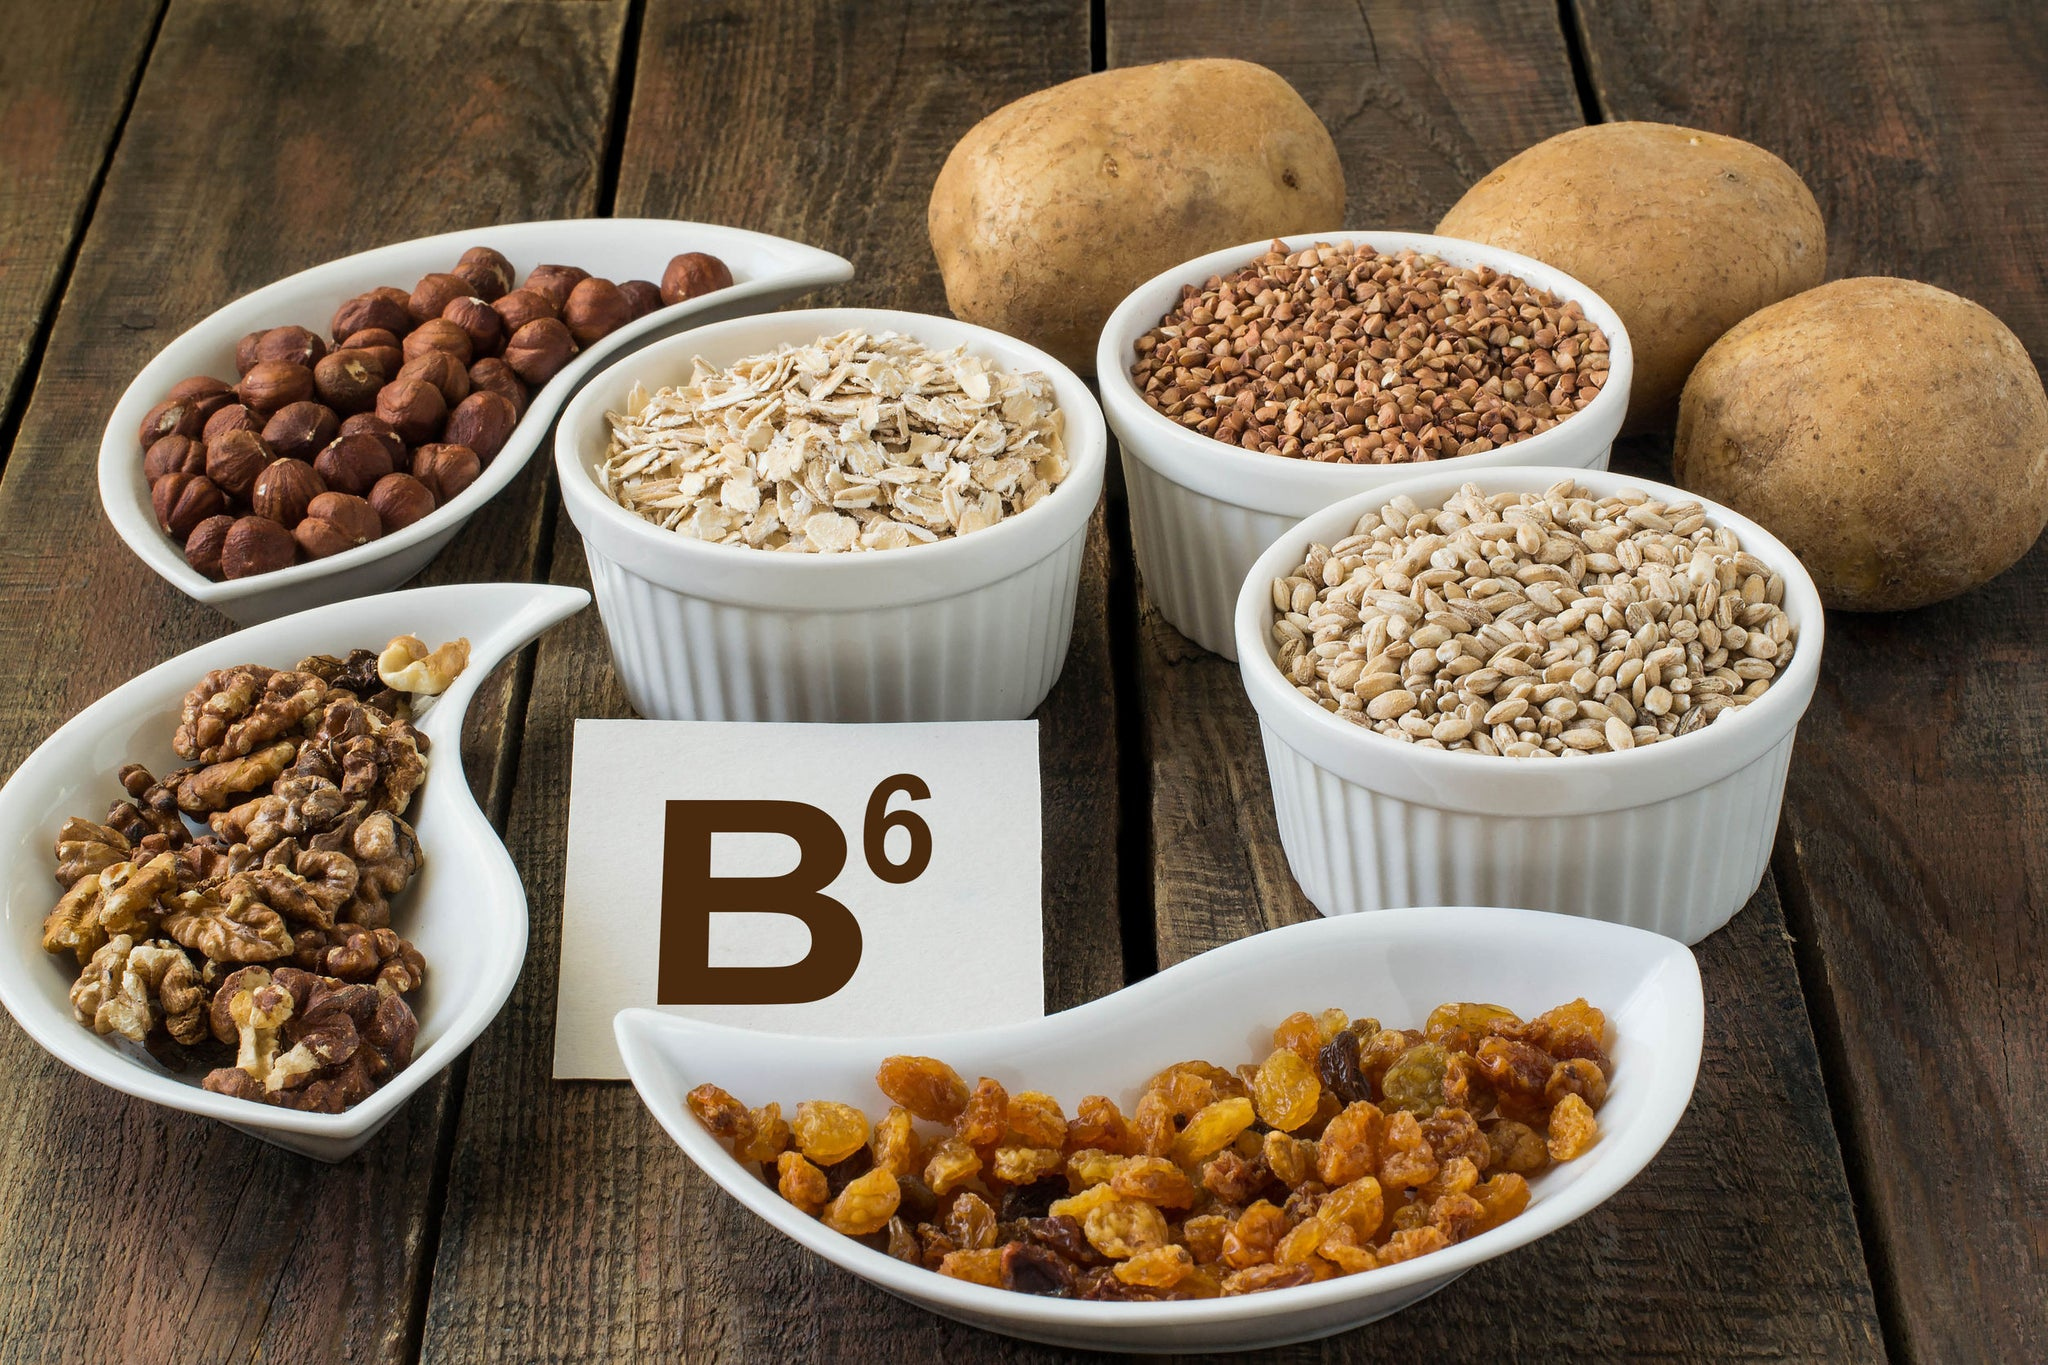 Why Take Vitamin B6?